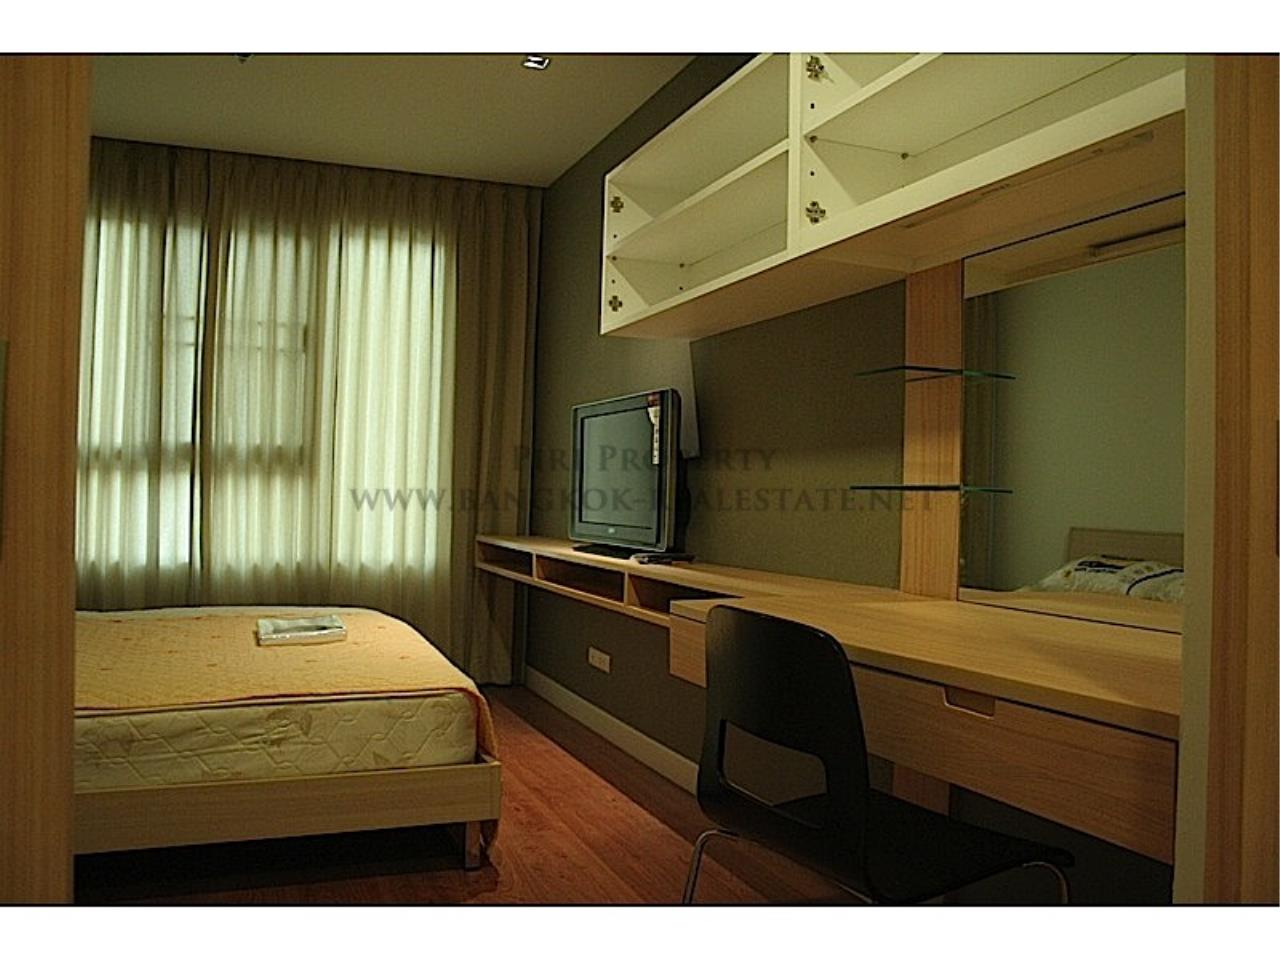 Piri Property Agency's Nicely Furnished One Bedroom Unit - Condo One X 5